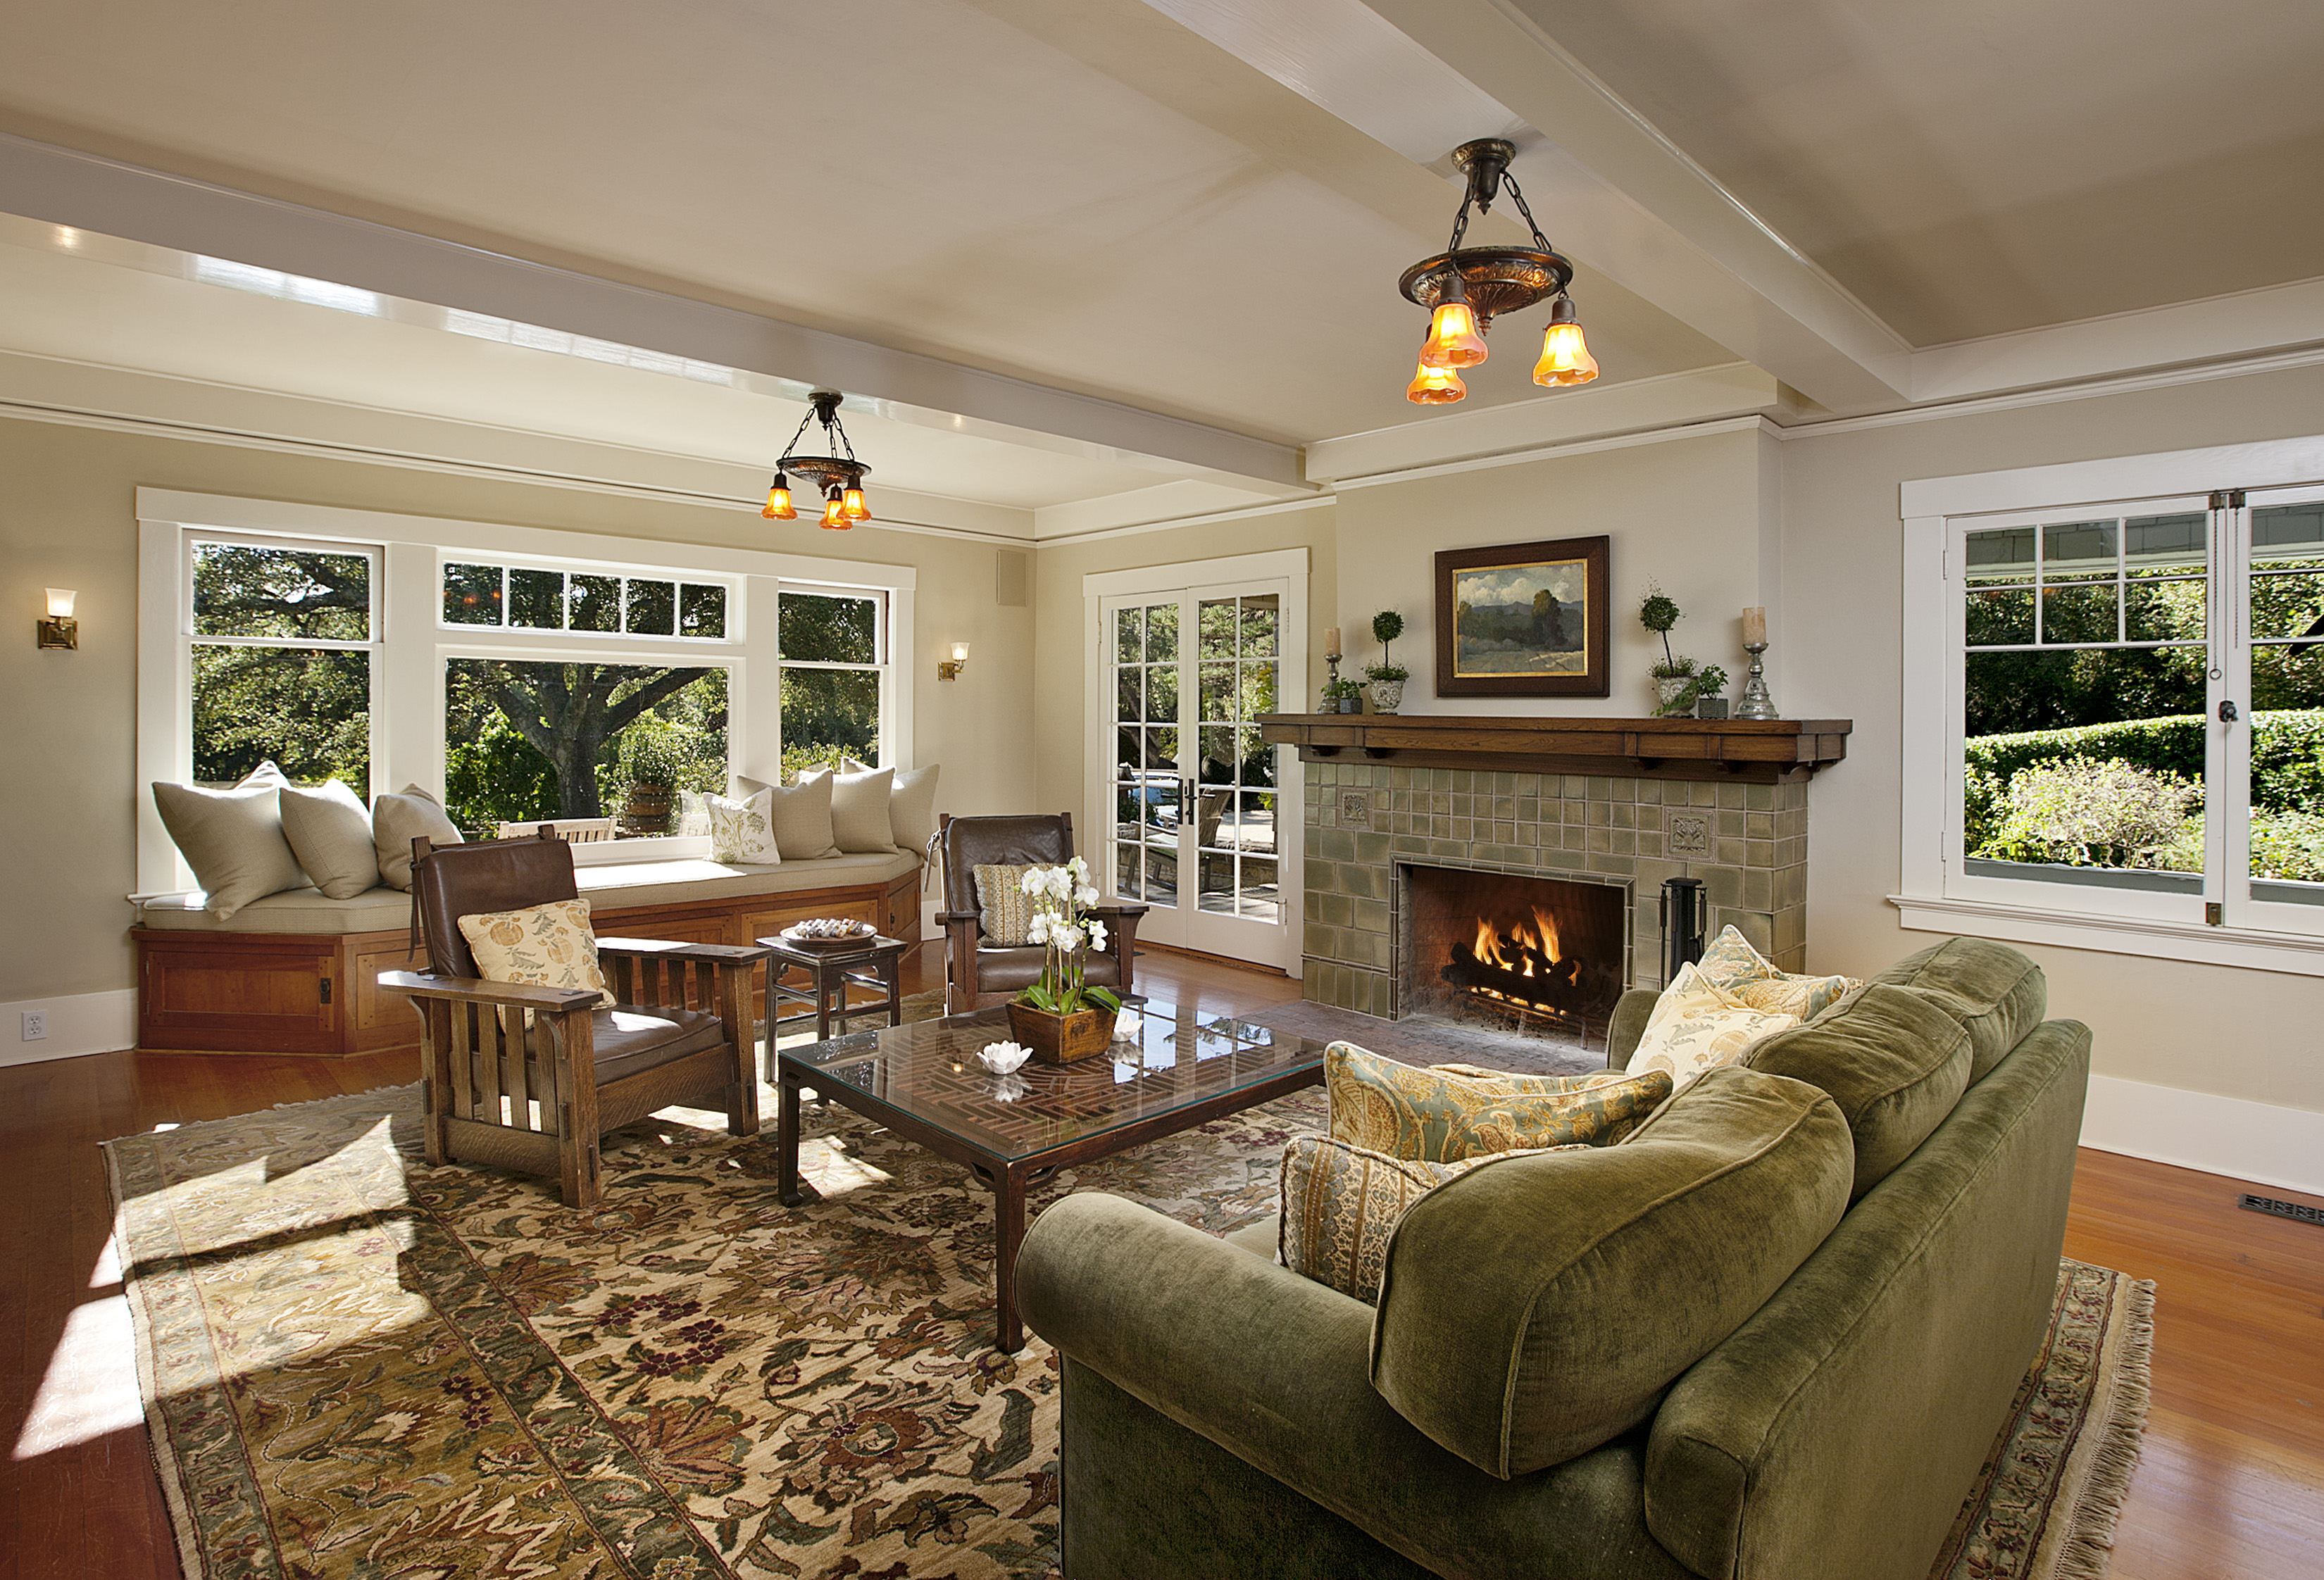 Popular home styles for 2012 montecito real estate - Homes interiors and living ...